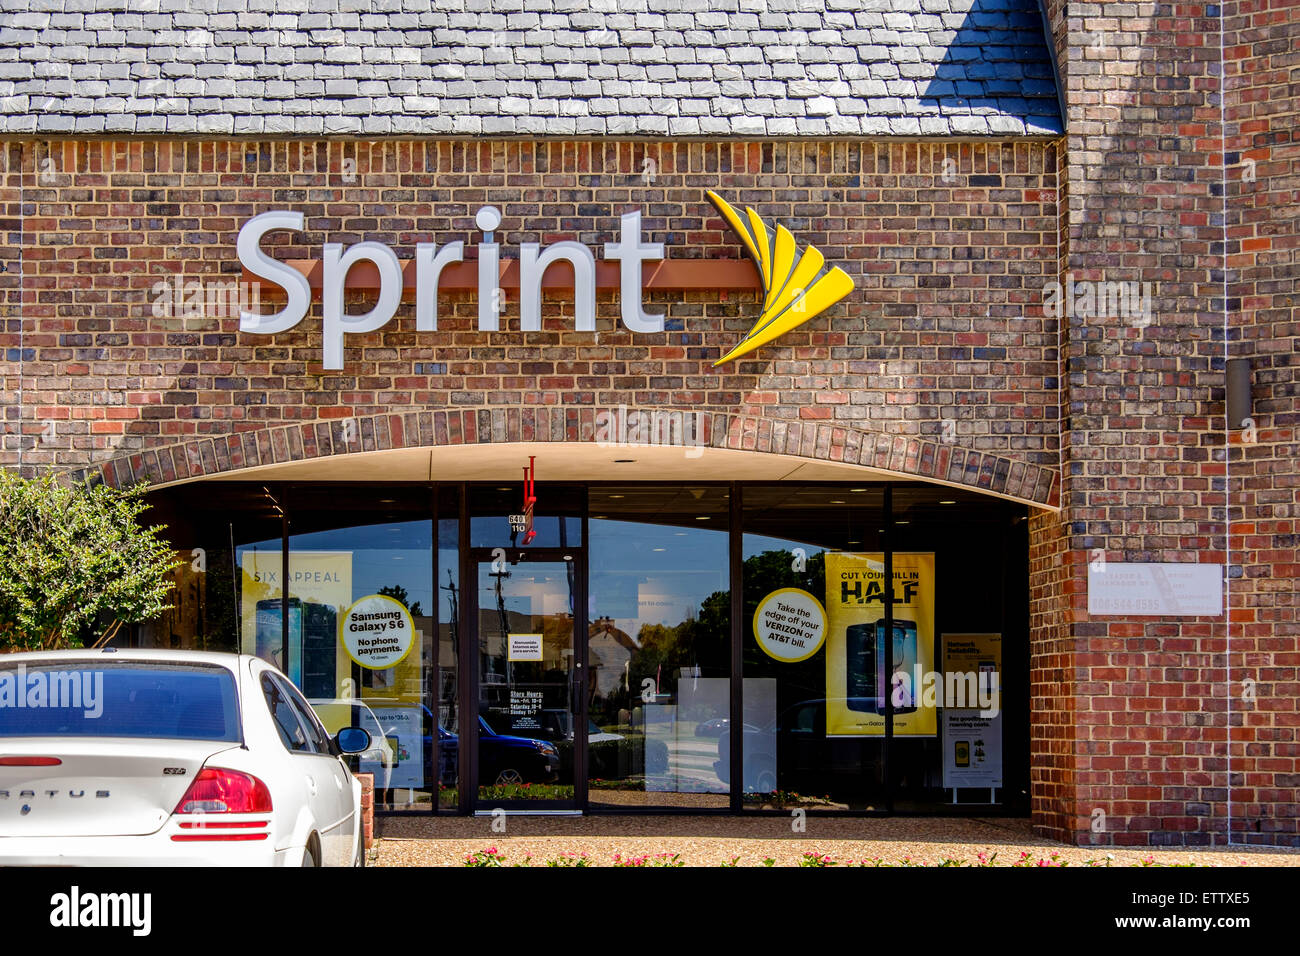 The exterior of a Sprint telecommunication store. - Stock Image